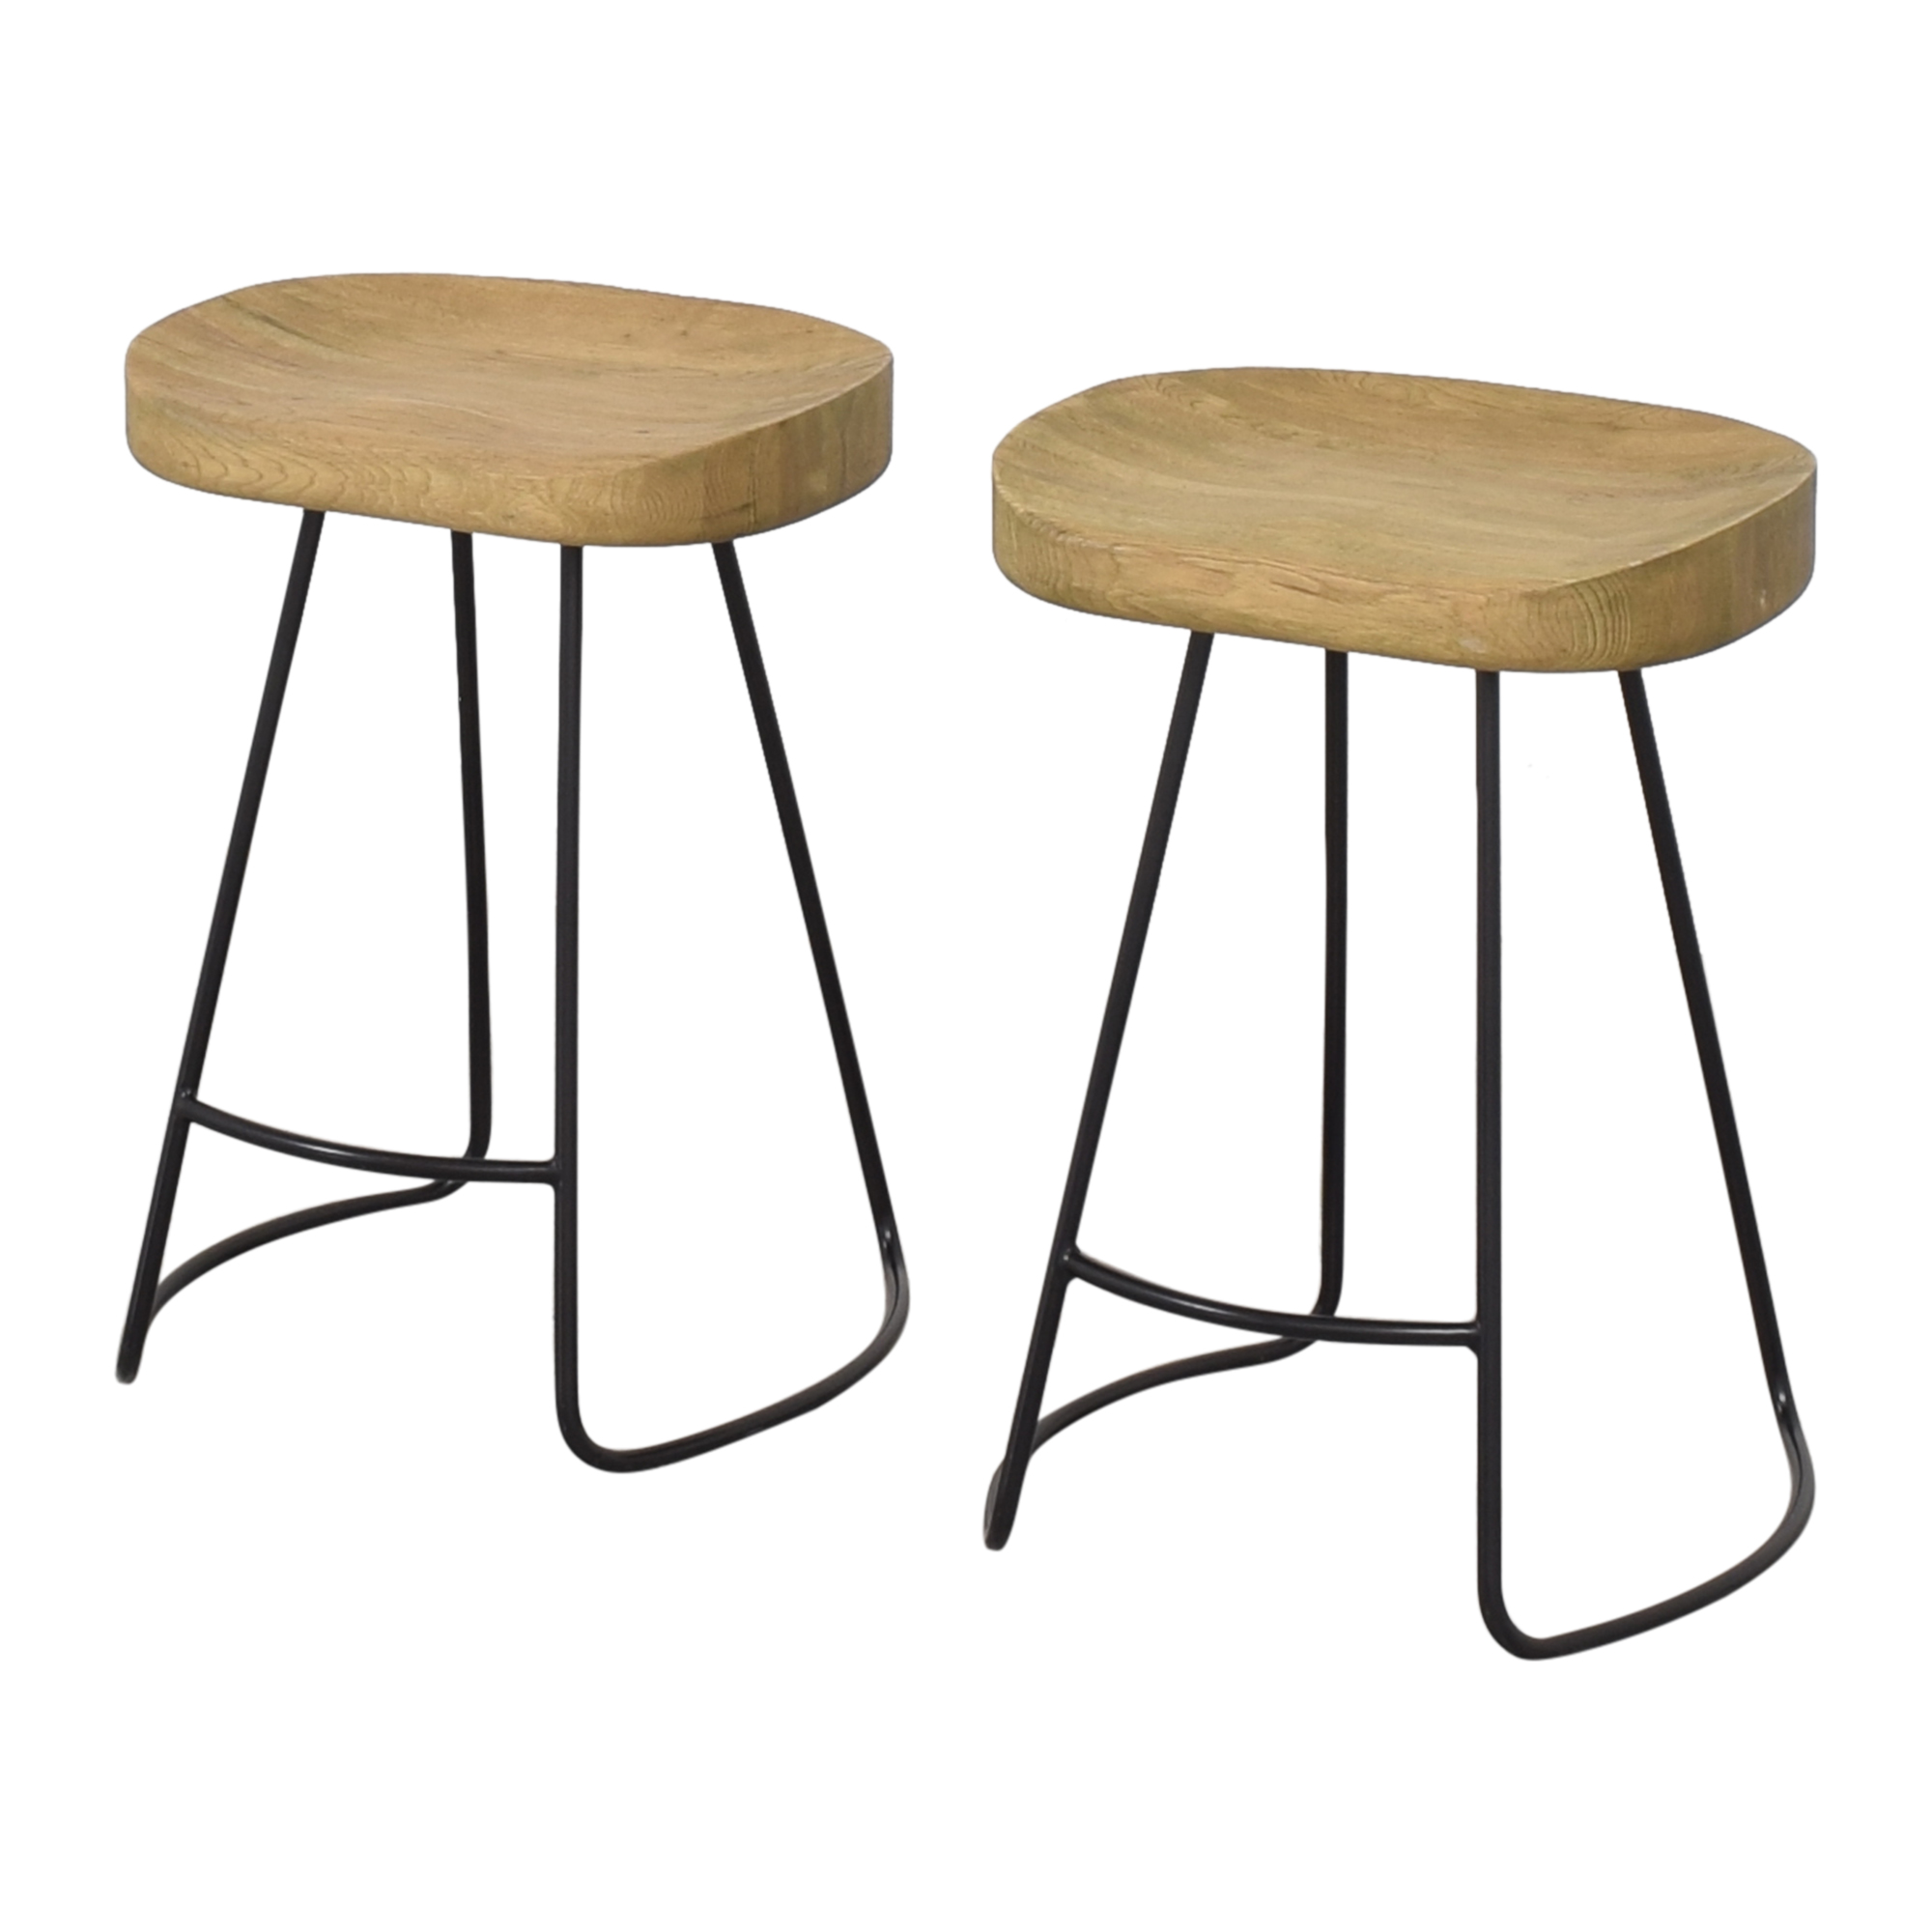 Restoration Hardware 1950s Tractor Seat Counter Stools / Stools